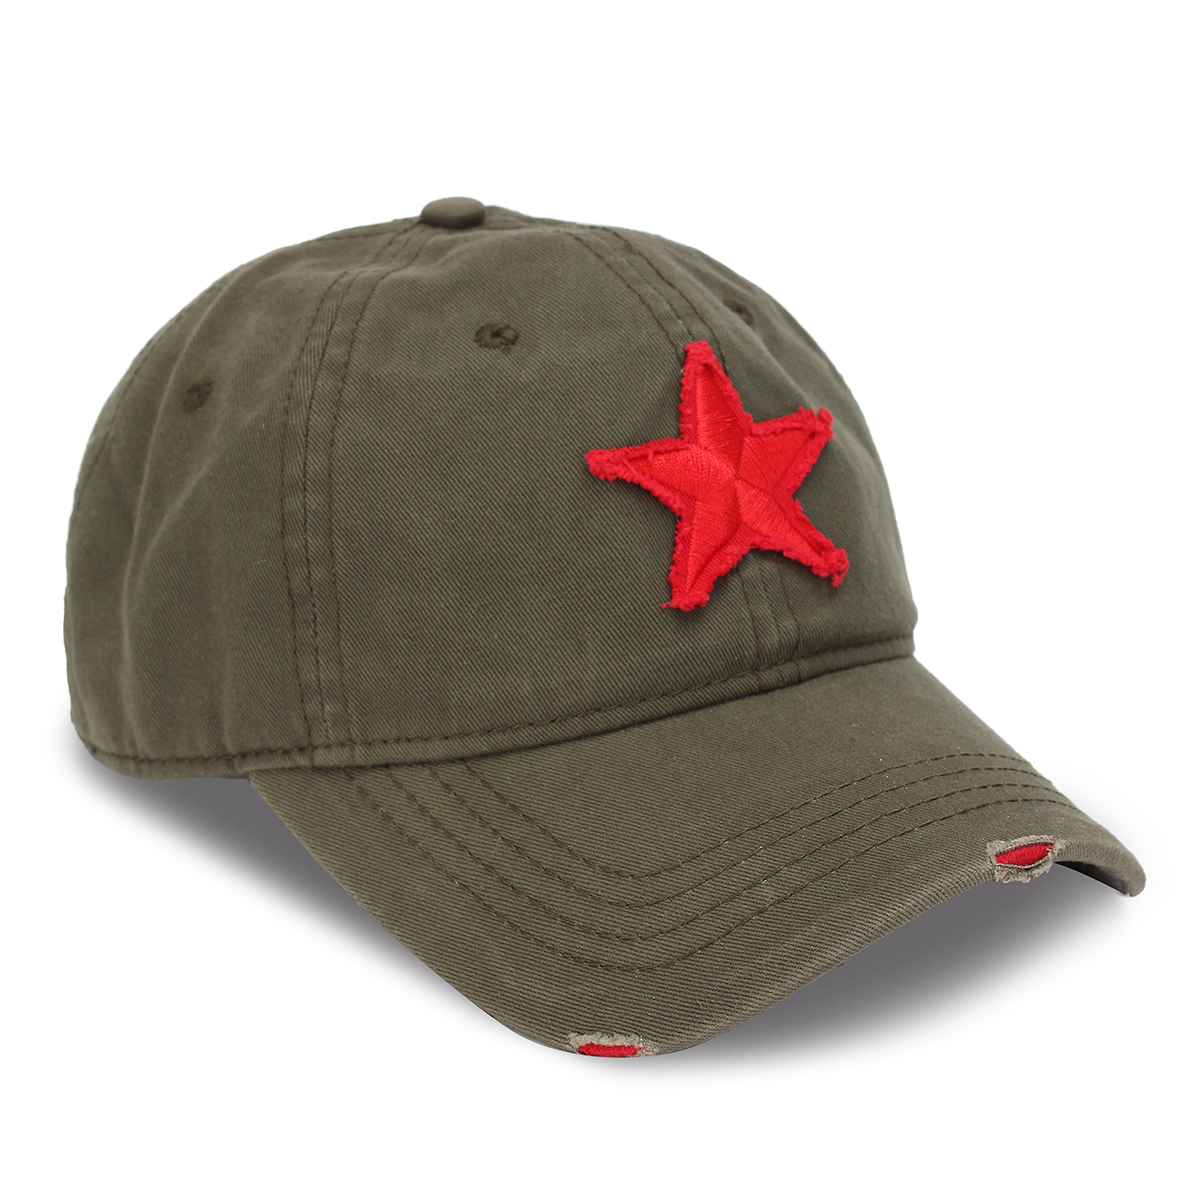 Unisex Baseball Cap Golf Hat Ball Five-Pointed Star Embroidery Casual Sun Caps Outdoor Sports Hat